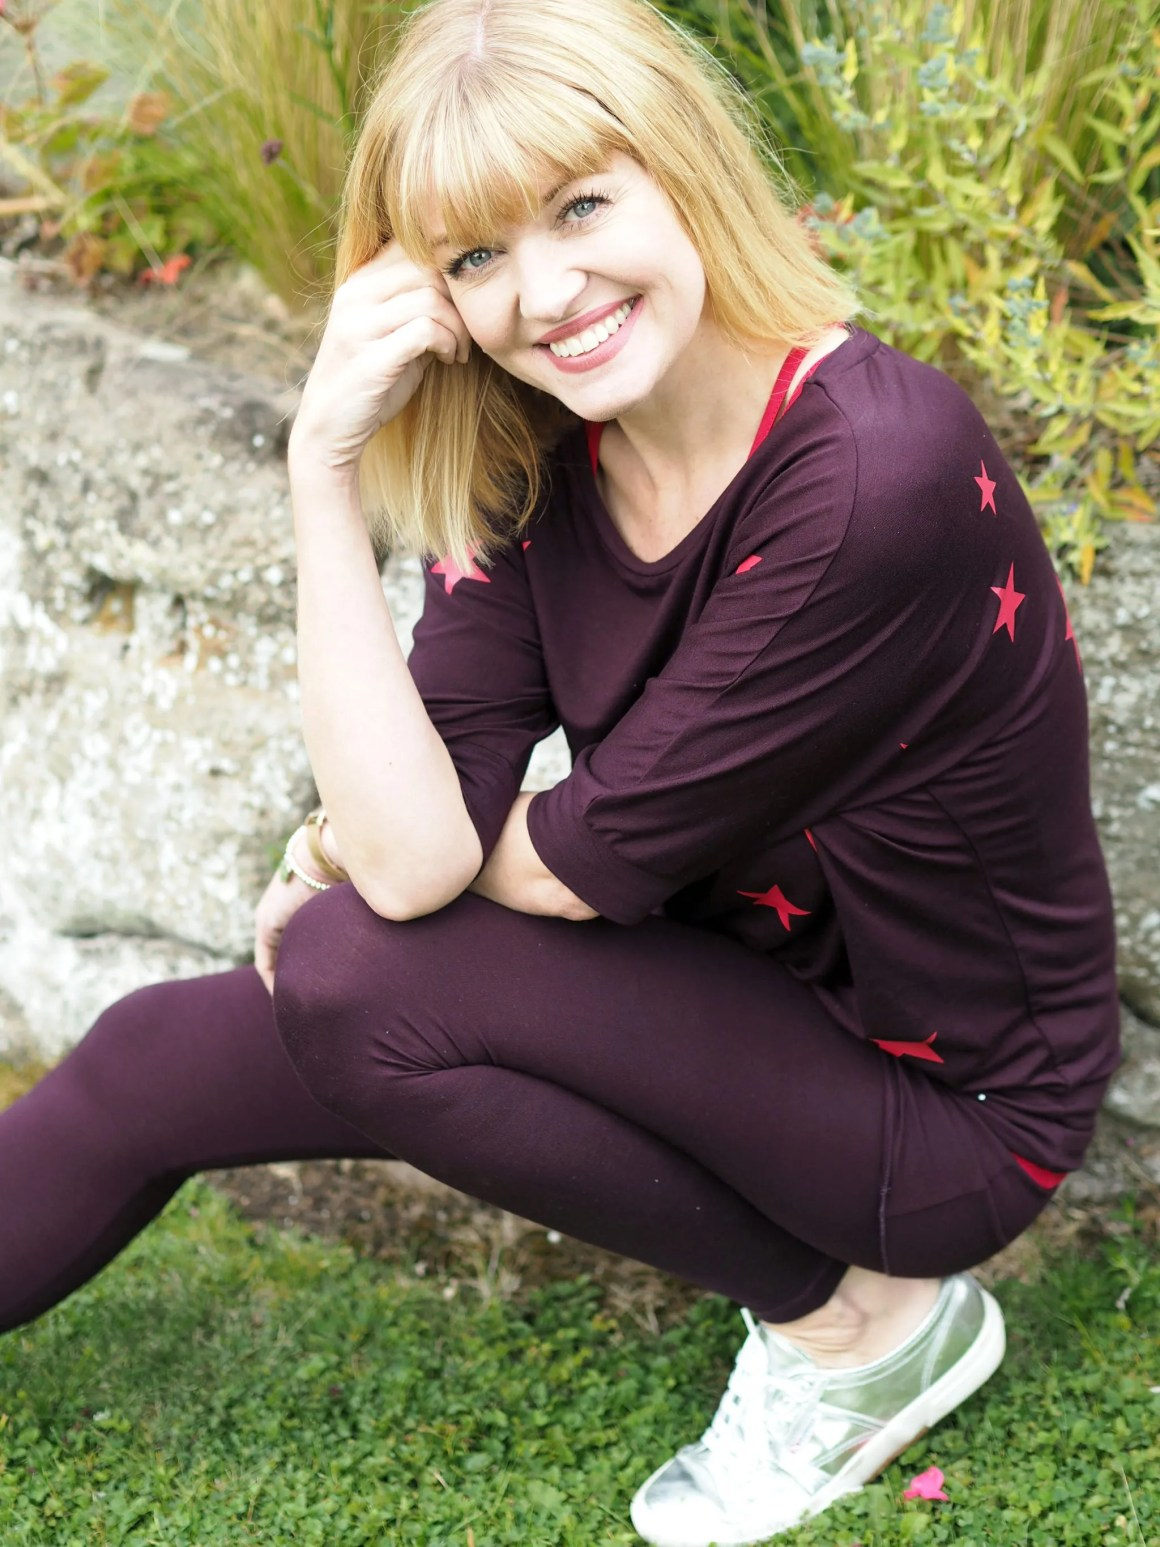 What-Lizzy-loves-bamboo-yoga-clothes-stars-top-leggings